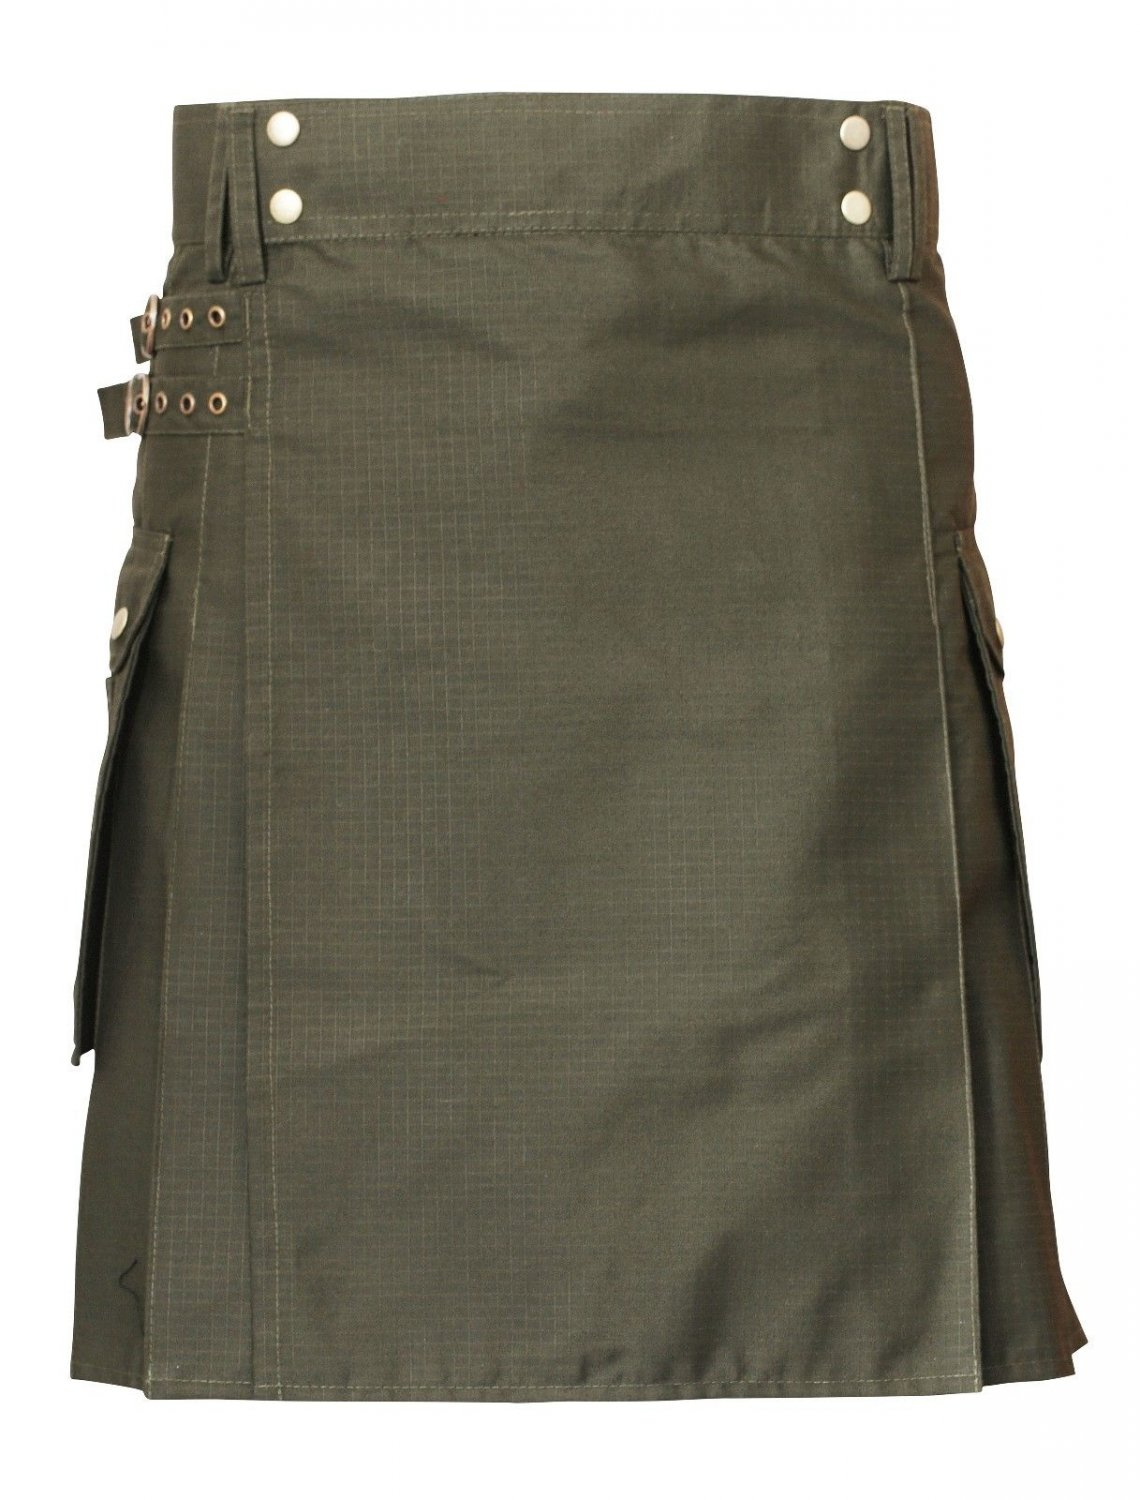 48 Size Traditional Scottish Utility Heavy Rip Stop Cotton Kilt Olive Green Cotton Deluxe Kilt